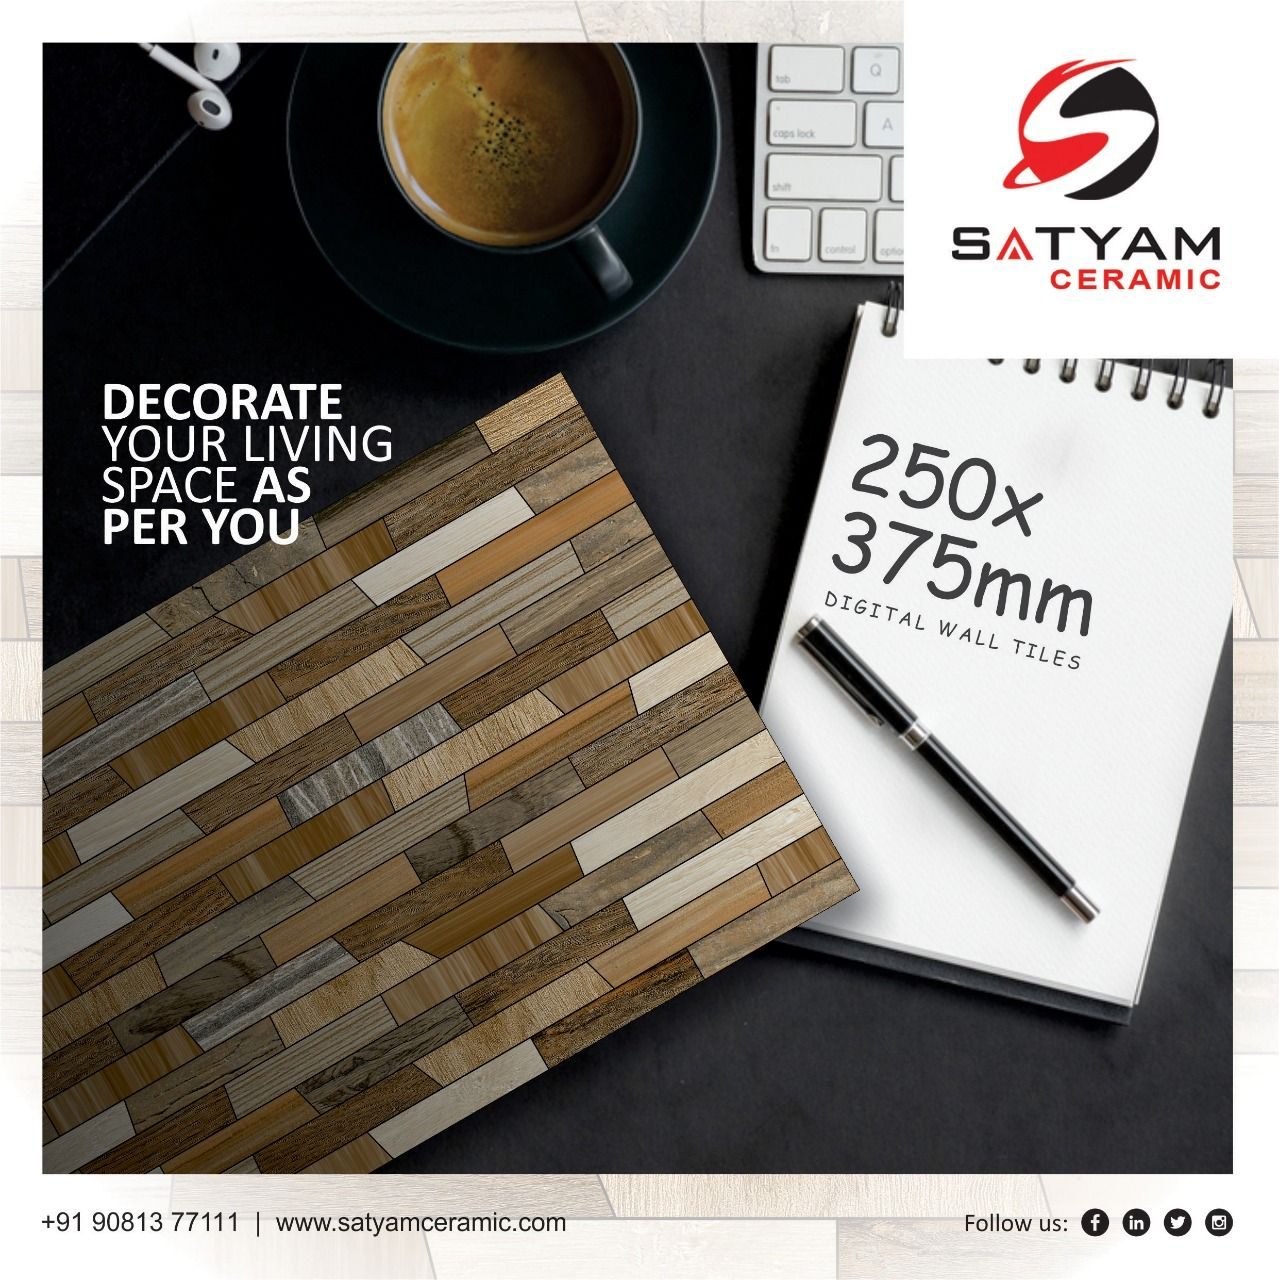 Decorate Your Living Space As Per You Satyam Ceramic Digital Wall Tiles 250x375 Mm Satyamceramic Satyamtiles Digitalwal Digital Wall Wall Tiles Ceramics